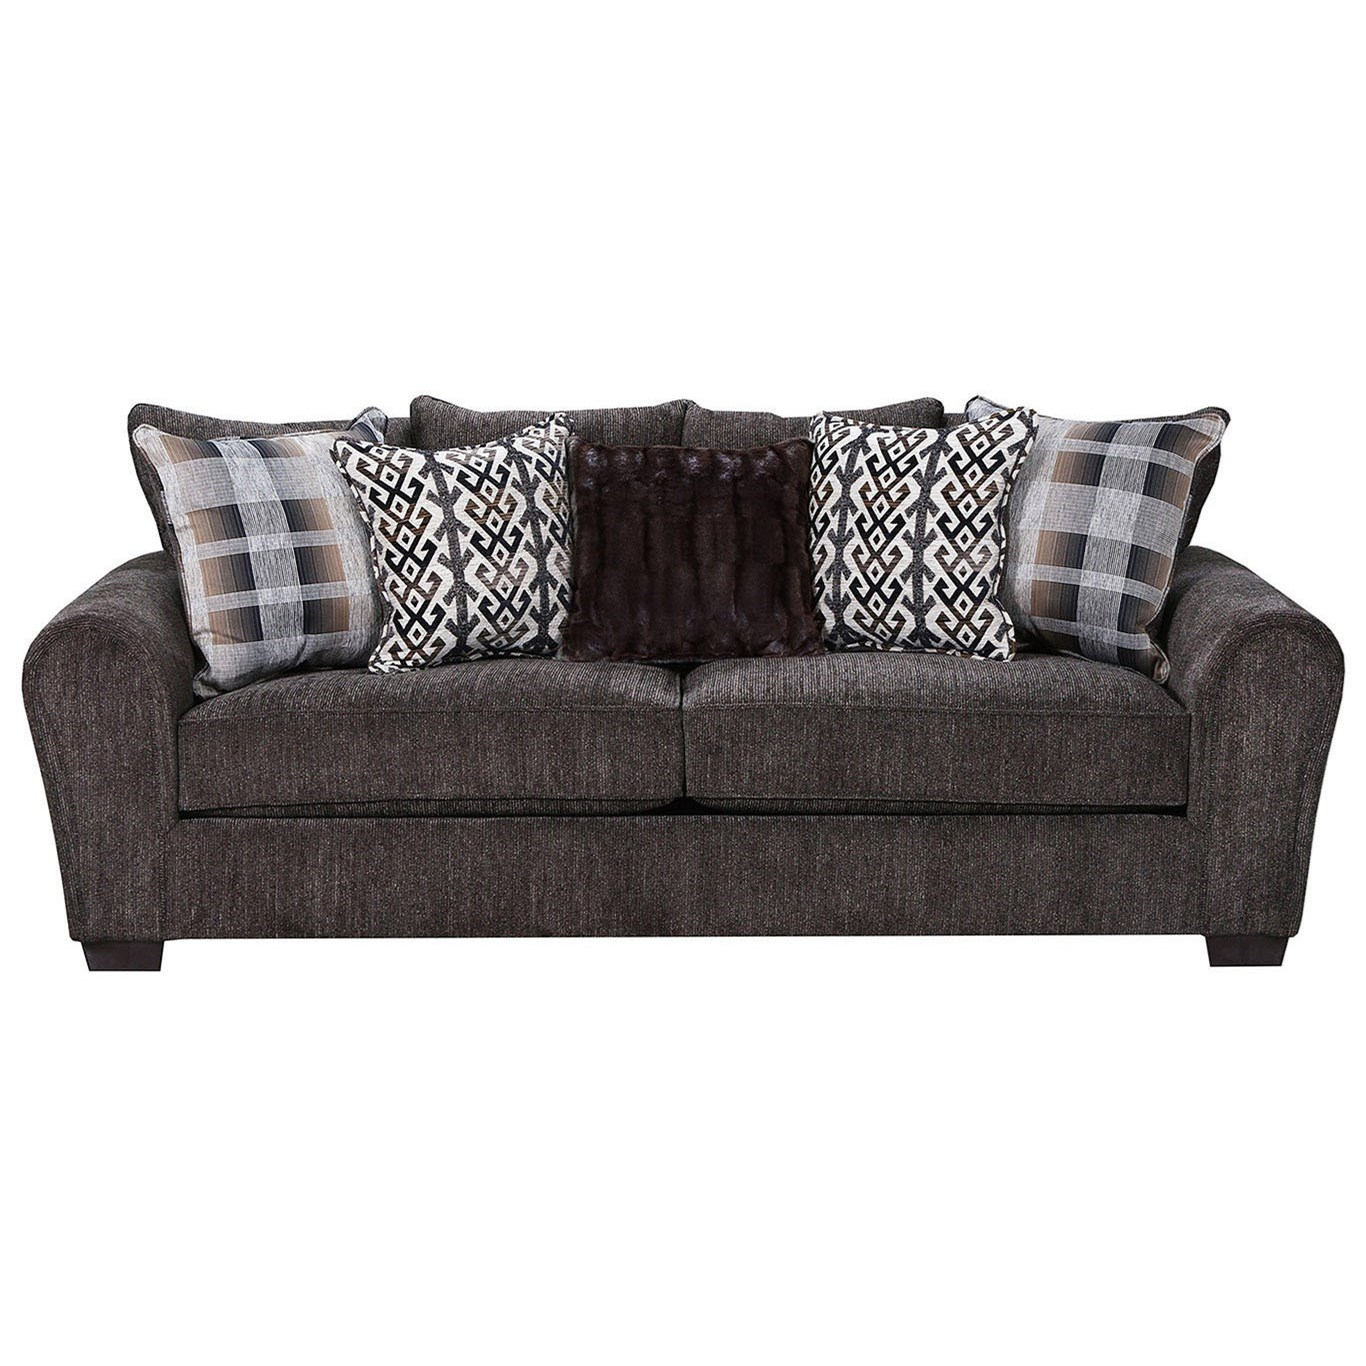 9182BR Sofa Sleeper by United Furniture Industries at Dream Home Interiors